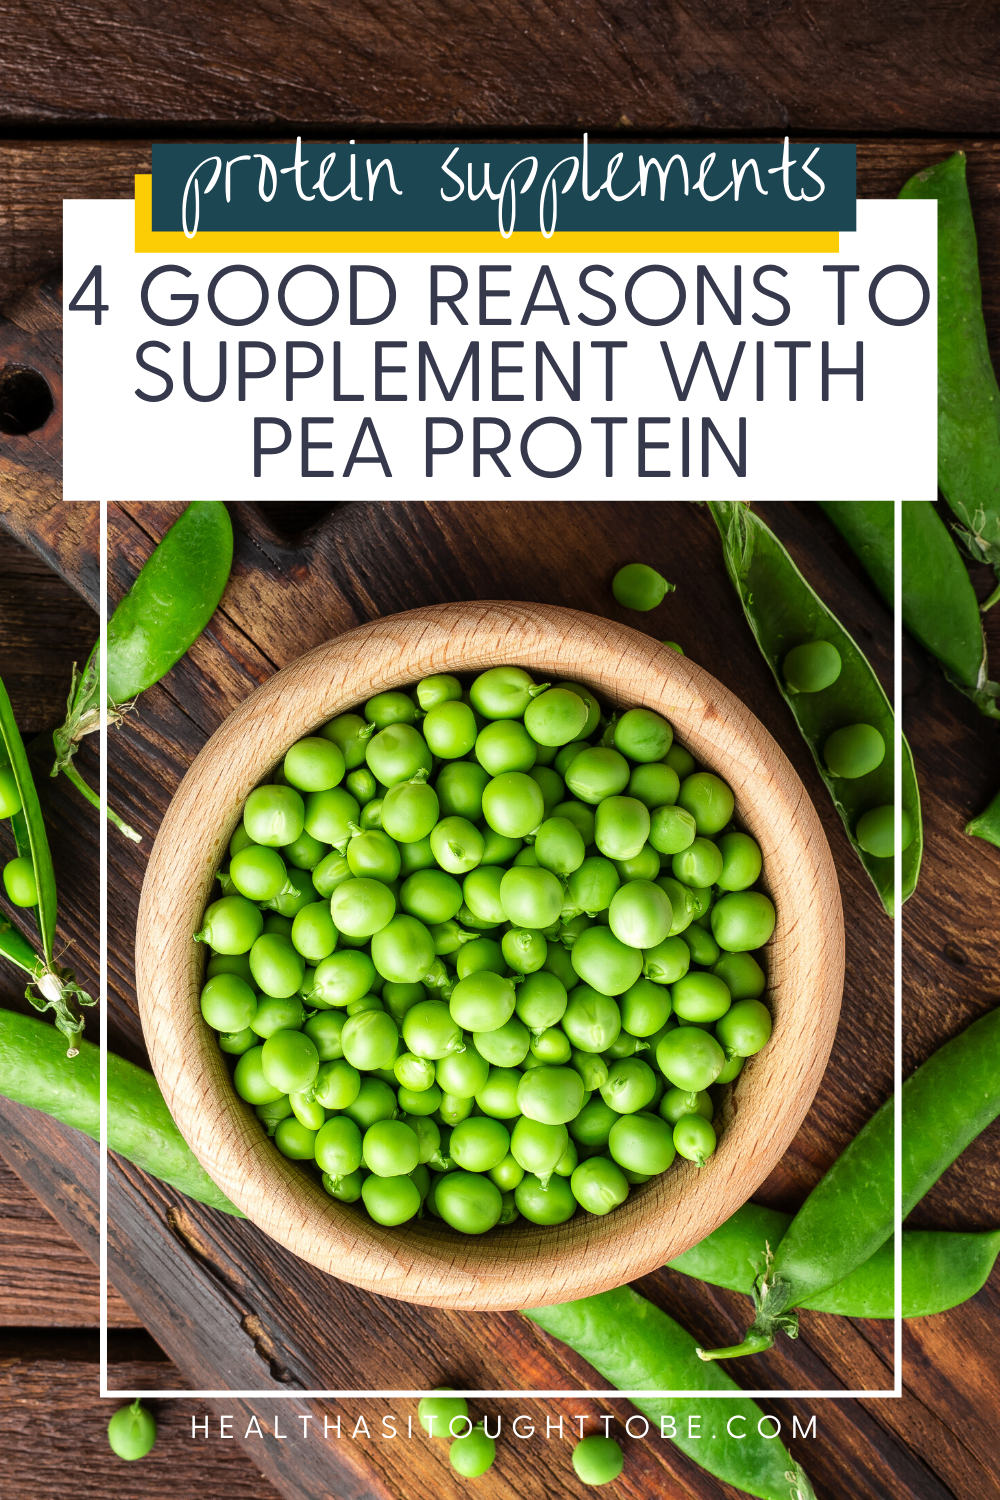 4 Reasons To Supplement With Pea Protein In 2020 Pea Protein Healthy Cholesterol Levels Protein Supplements